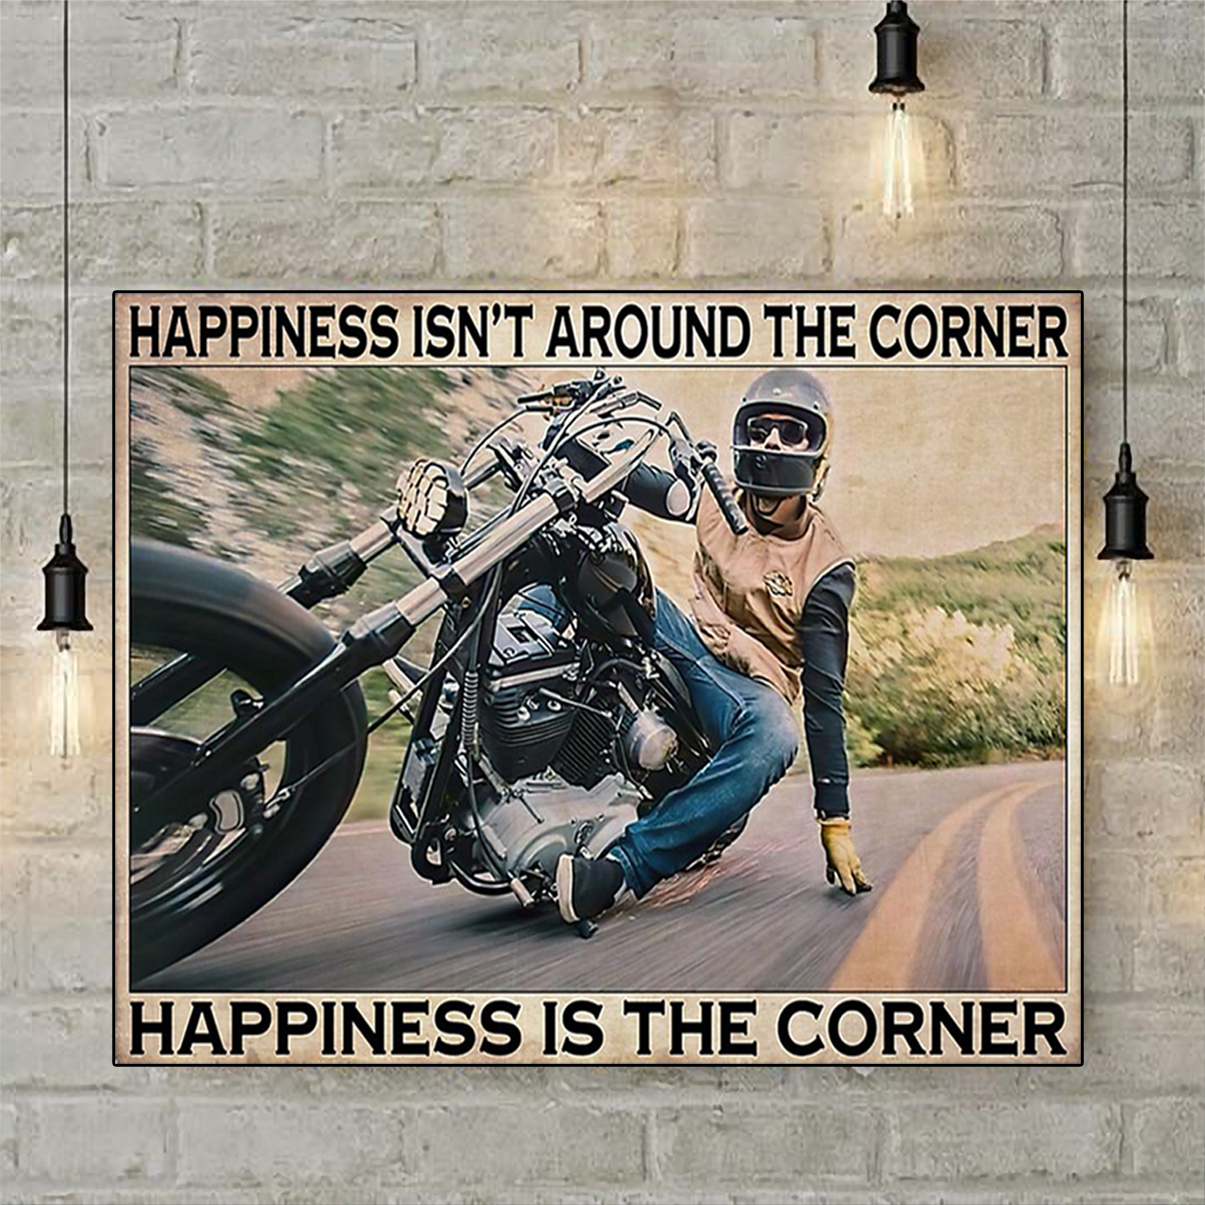 Motorcycle corner hapiness isn't around the corner poster A2